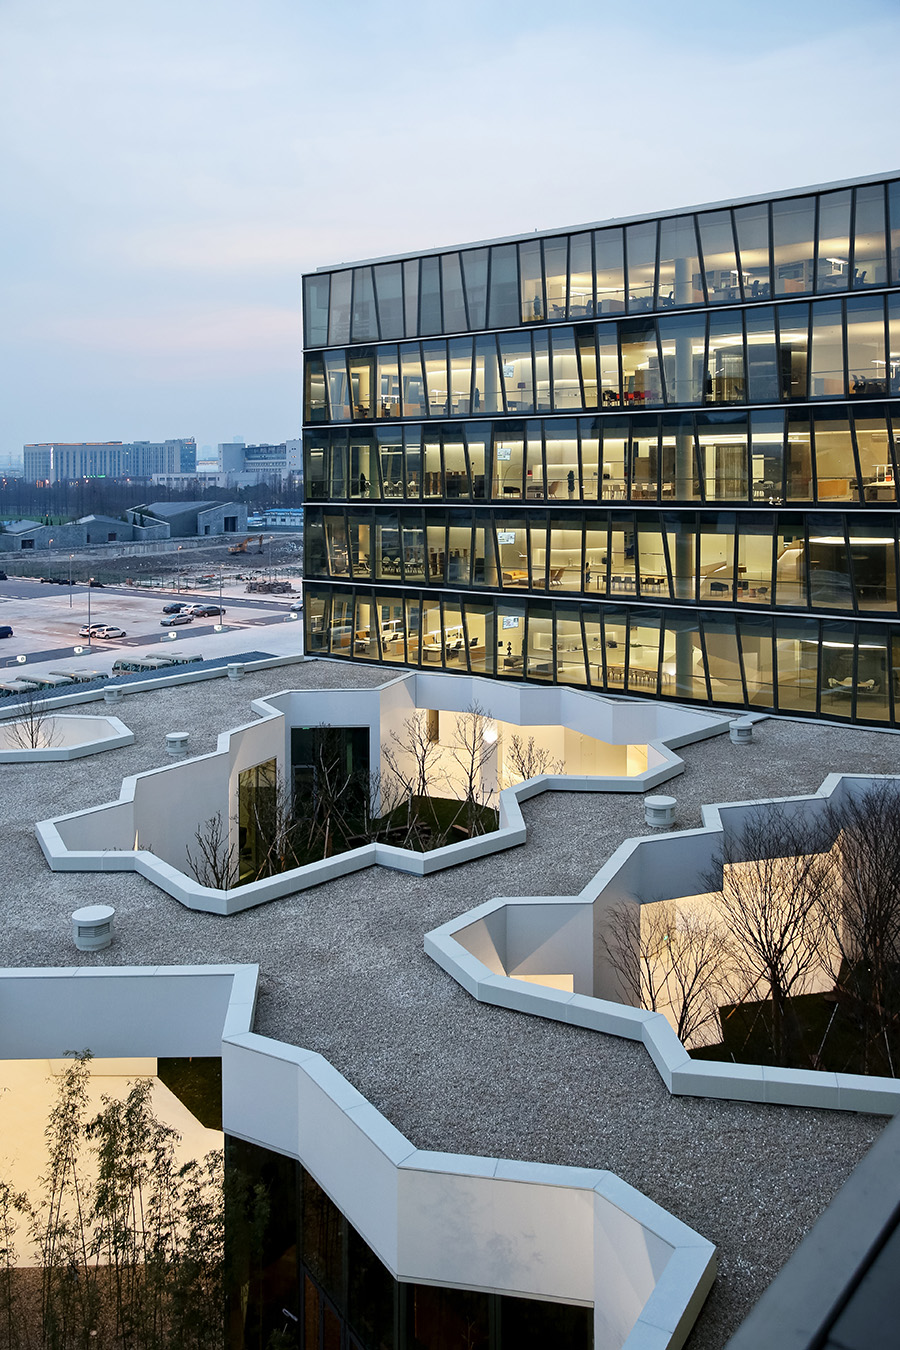 Image courtesy of ZAO/Zhang_Ke-Novartis Office Building